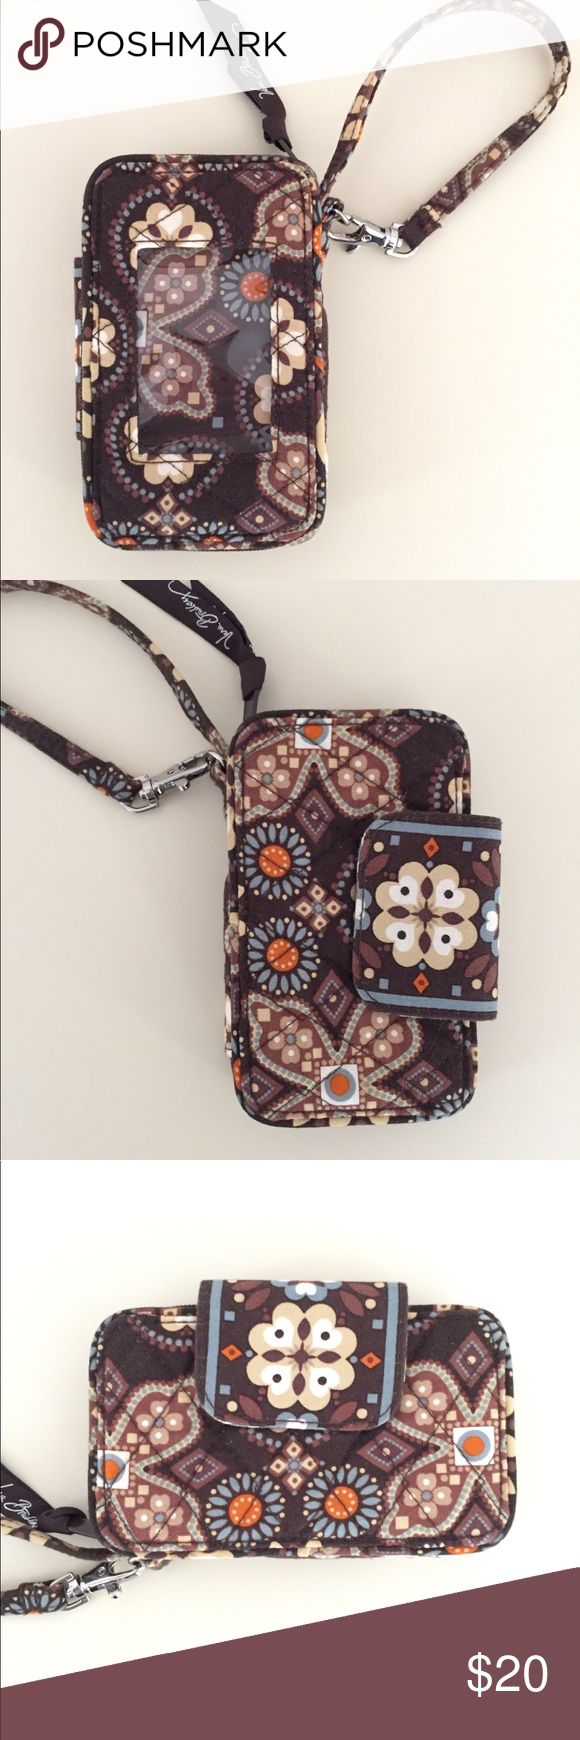 "Vera Bradley Smartphone Wristlet in Canyon Used and in great condition! There is slight wearing on zipper pull but is not very noticeable (see photo). This wristlet is perfect for use on it's own or as a wallet within your purse! Great organization and can even fit an iPhone 6!  Color: Canyon (retired pattern)  Approximate Measurements: 5.5""W x 3.5""H x 1.5""D Wristlet Strap Drop: 5""  Features: * zip around opening  * 3 card slots * ID window * interior zip compartment of change  * slip pocket for folded cash & receipts Vera Bradley Bags Clutches & Wristlets"